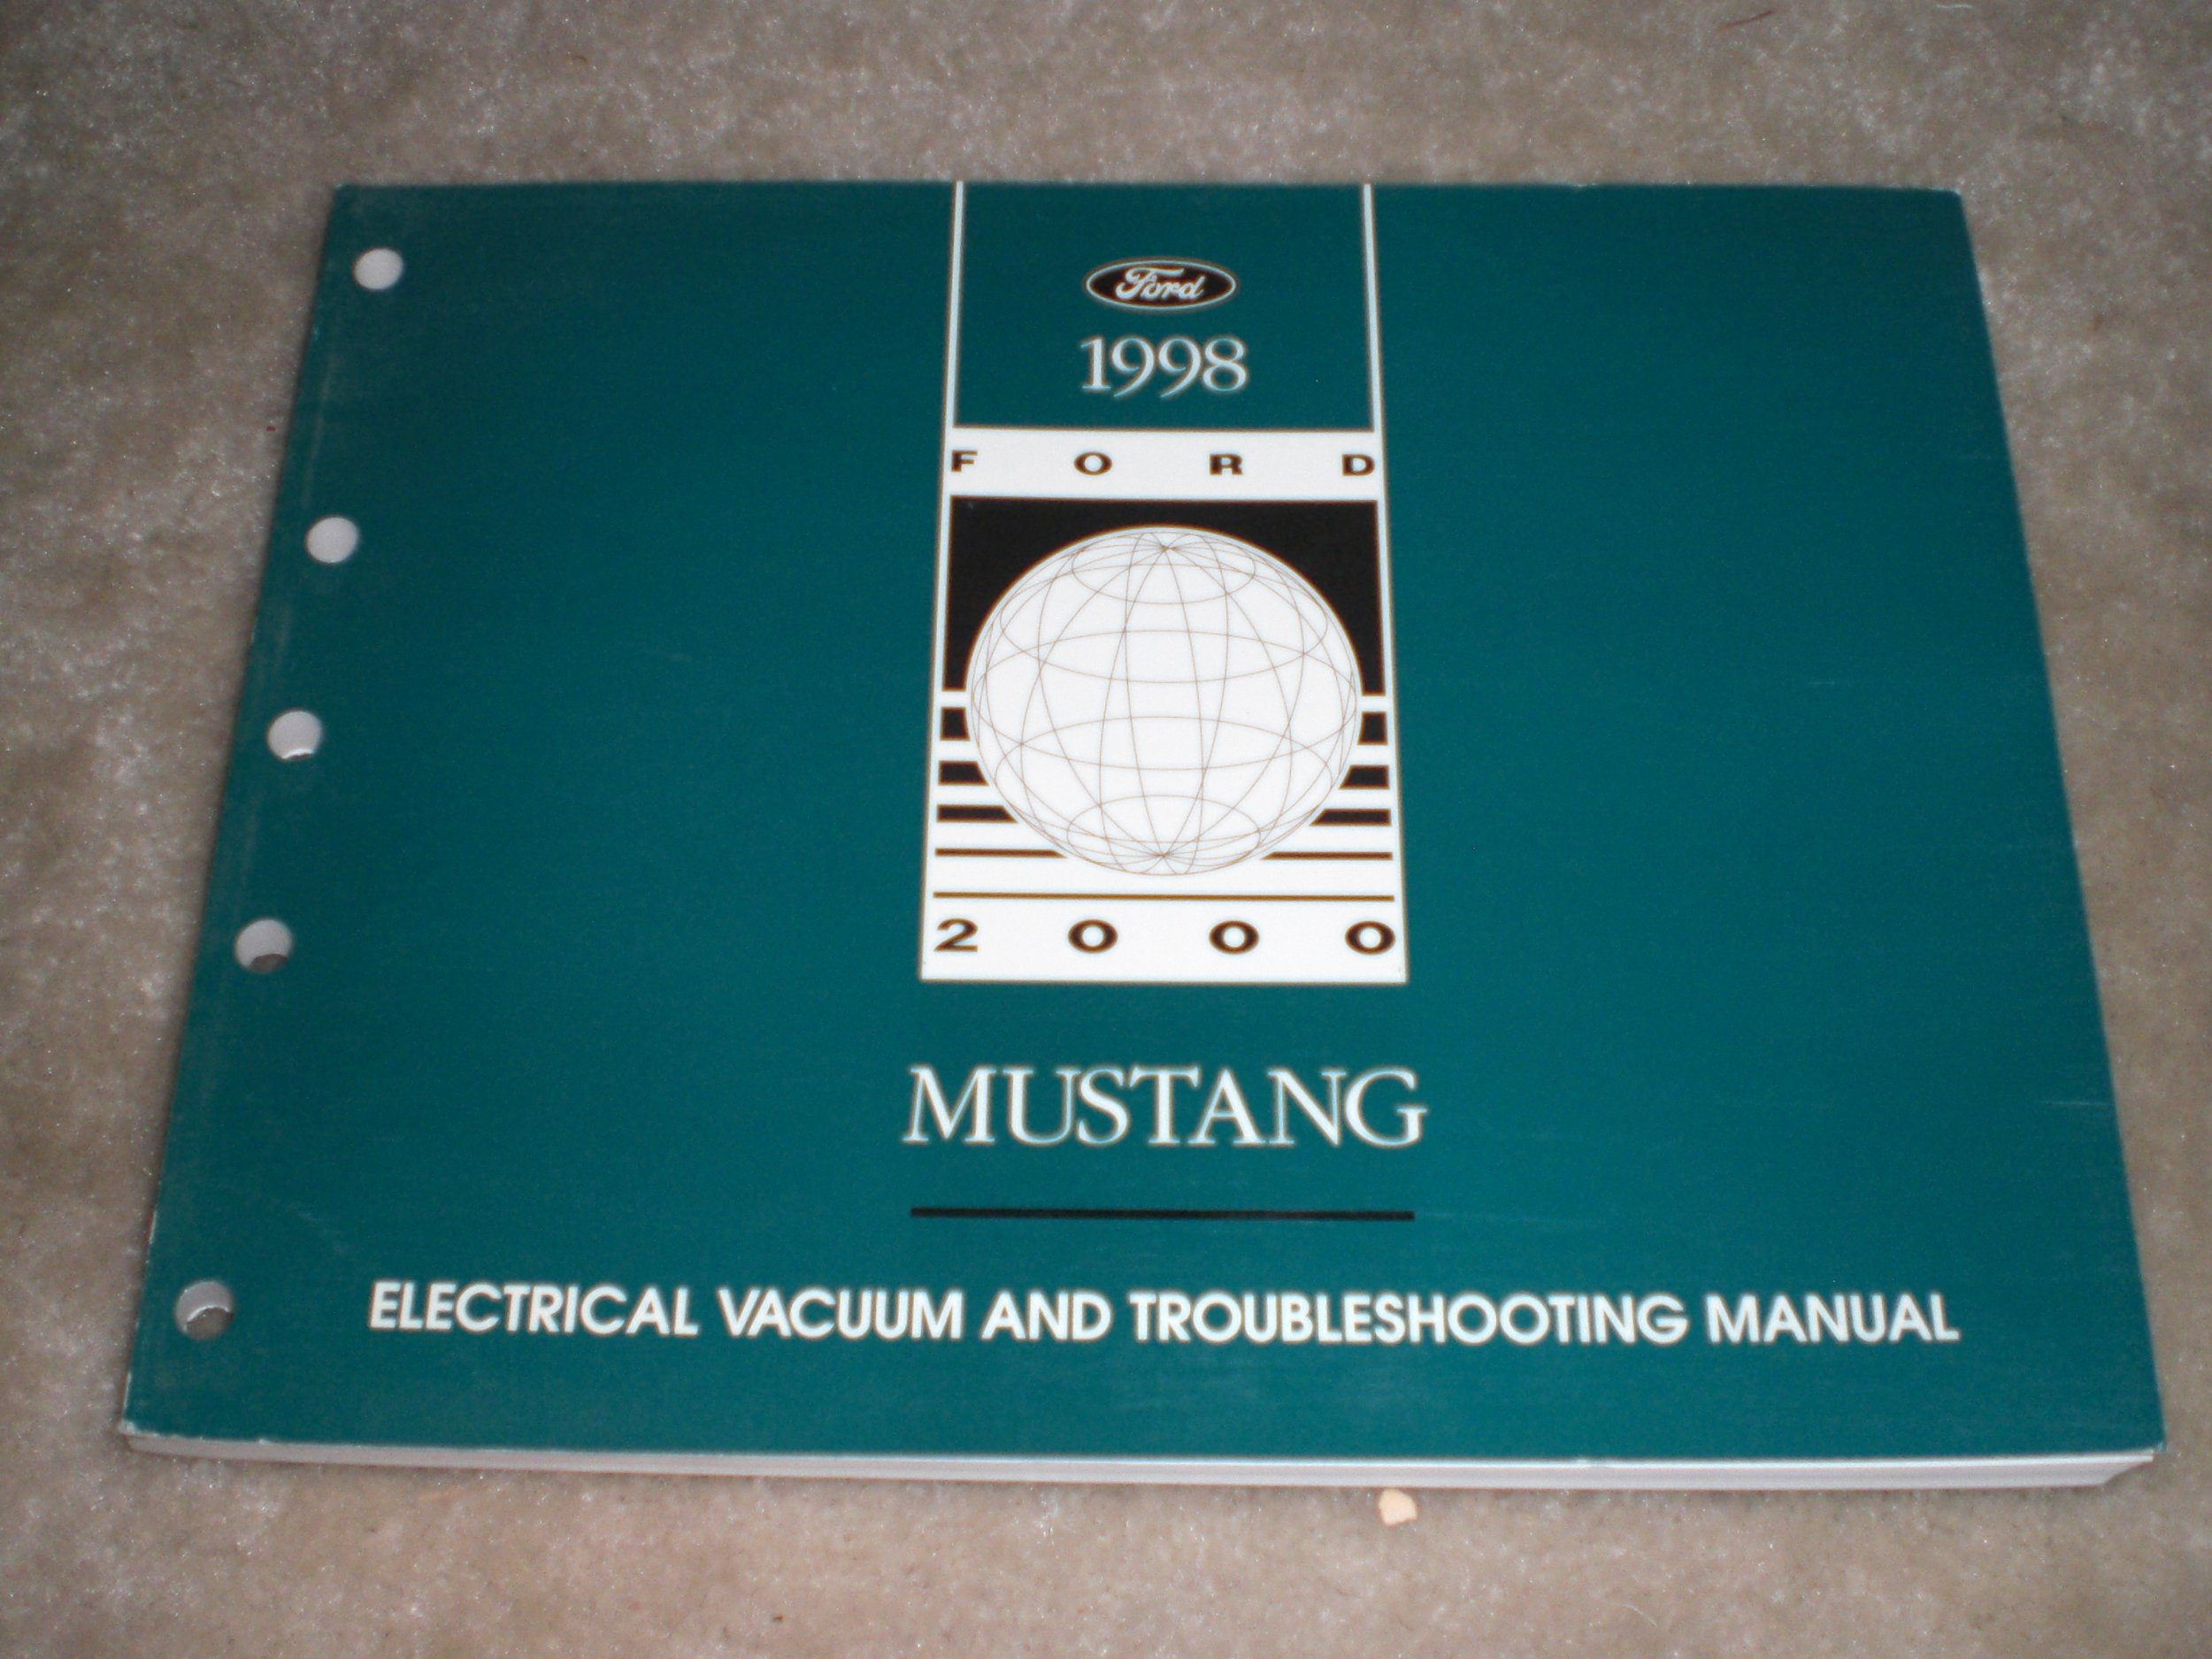 1998 Ford Mustang Electrical & Vacuum Troubleshooting Manual Original: ford  motor co.: Amazon.com: Books